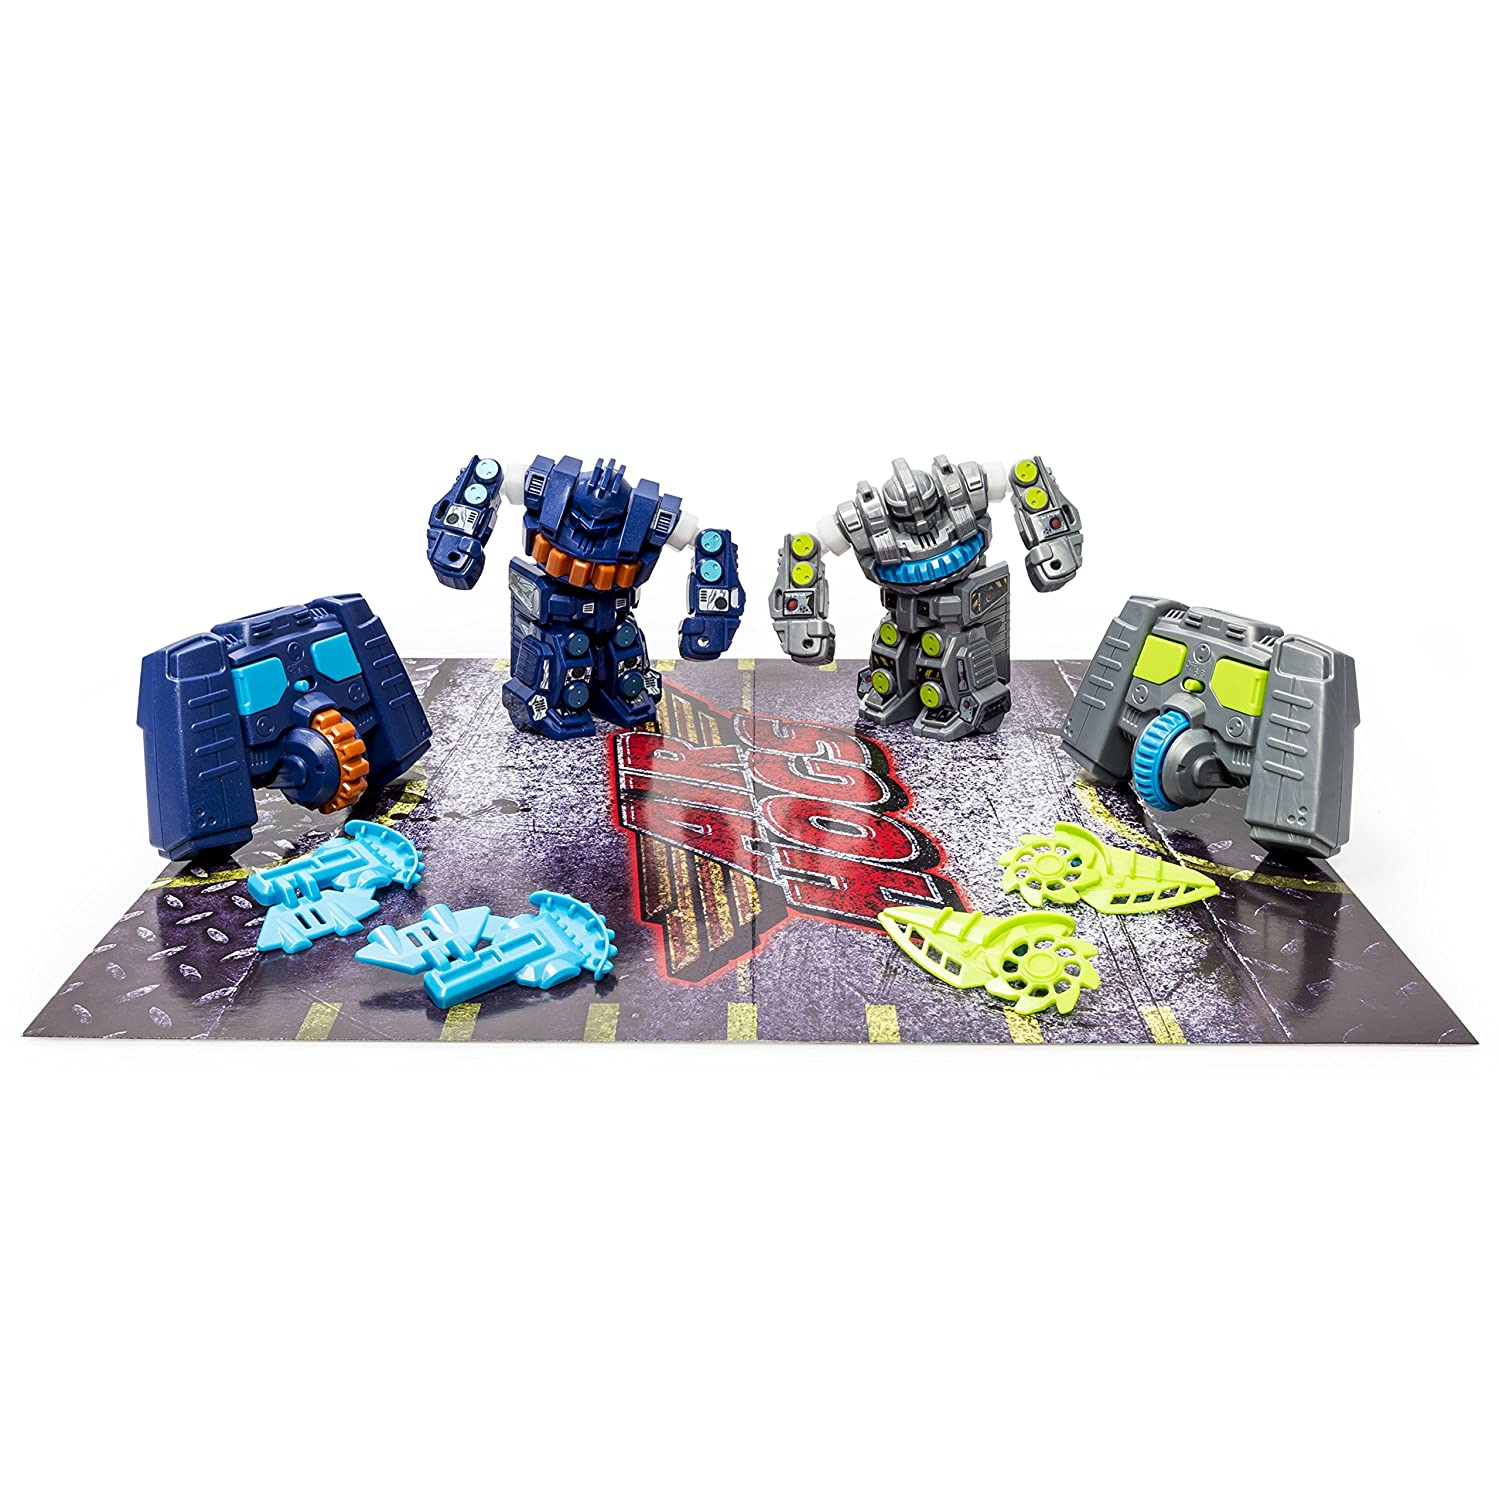 Top 7 Best Fighting Robot Toys Reviews in 2021 11